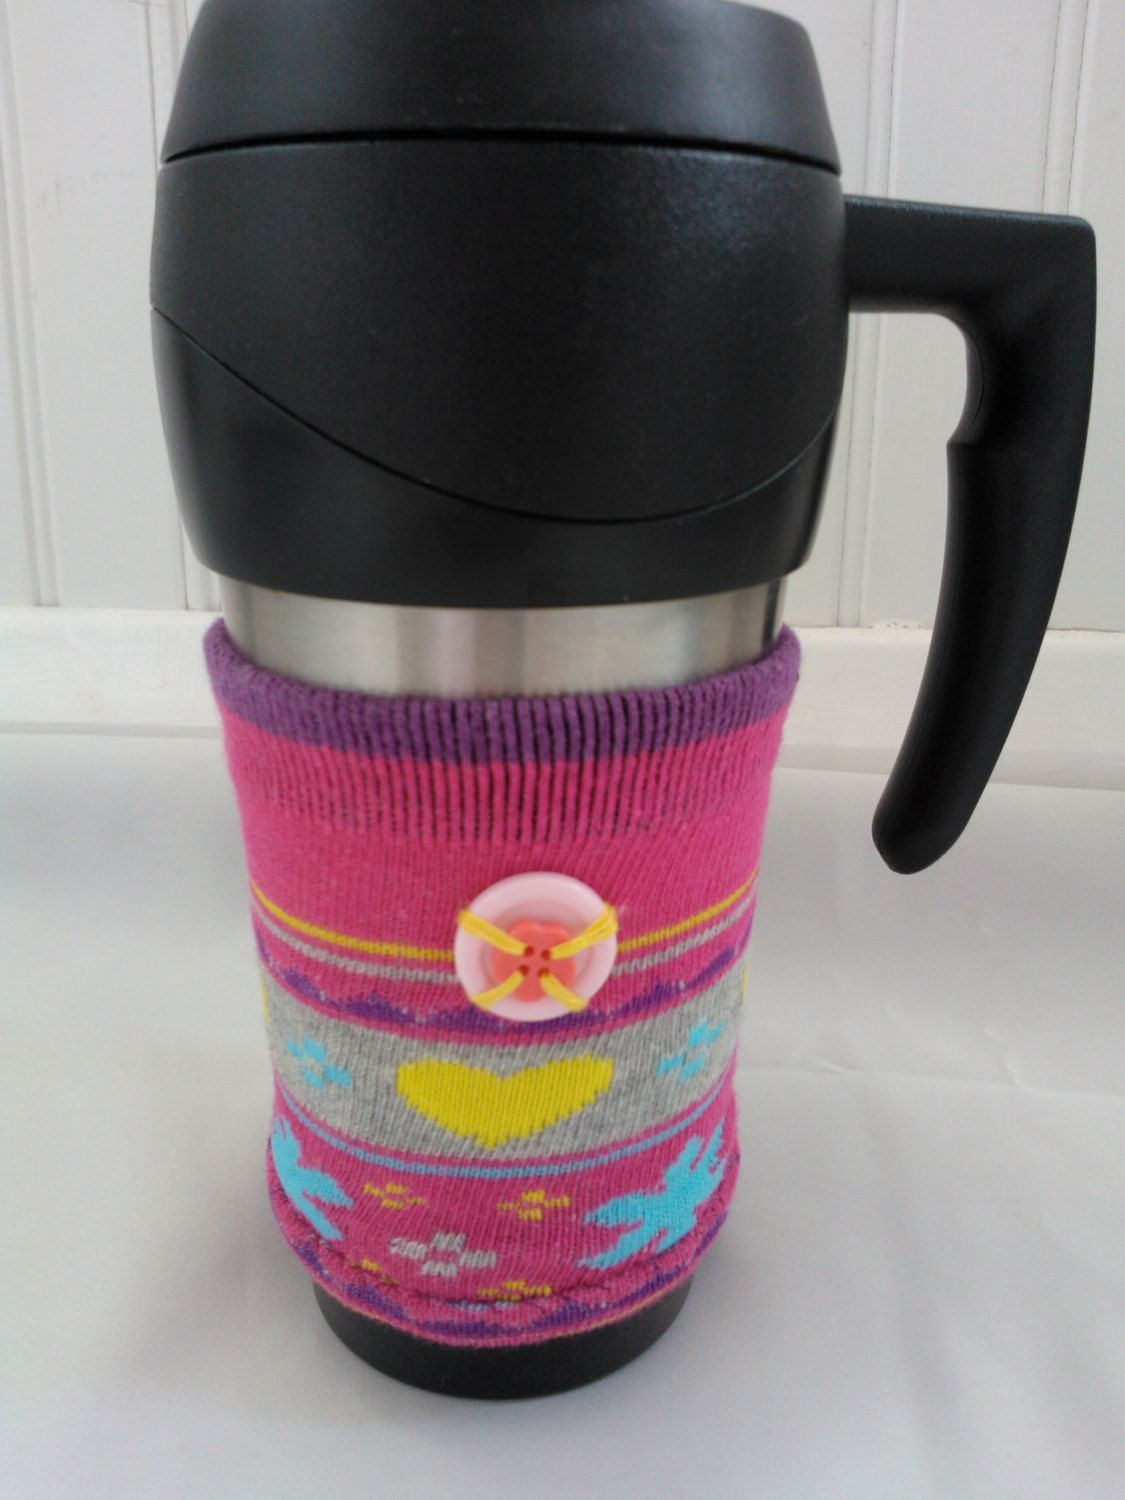 Coffee cup cosy fun colleague gift takeaway drink sleeve